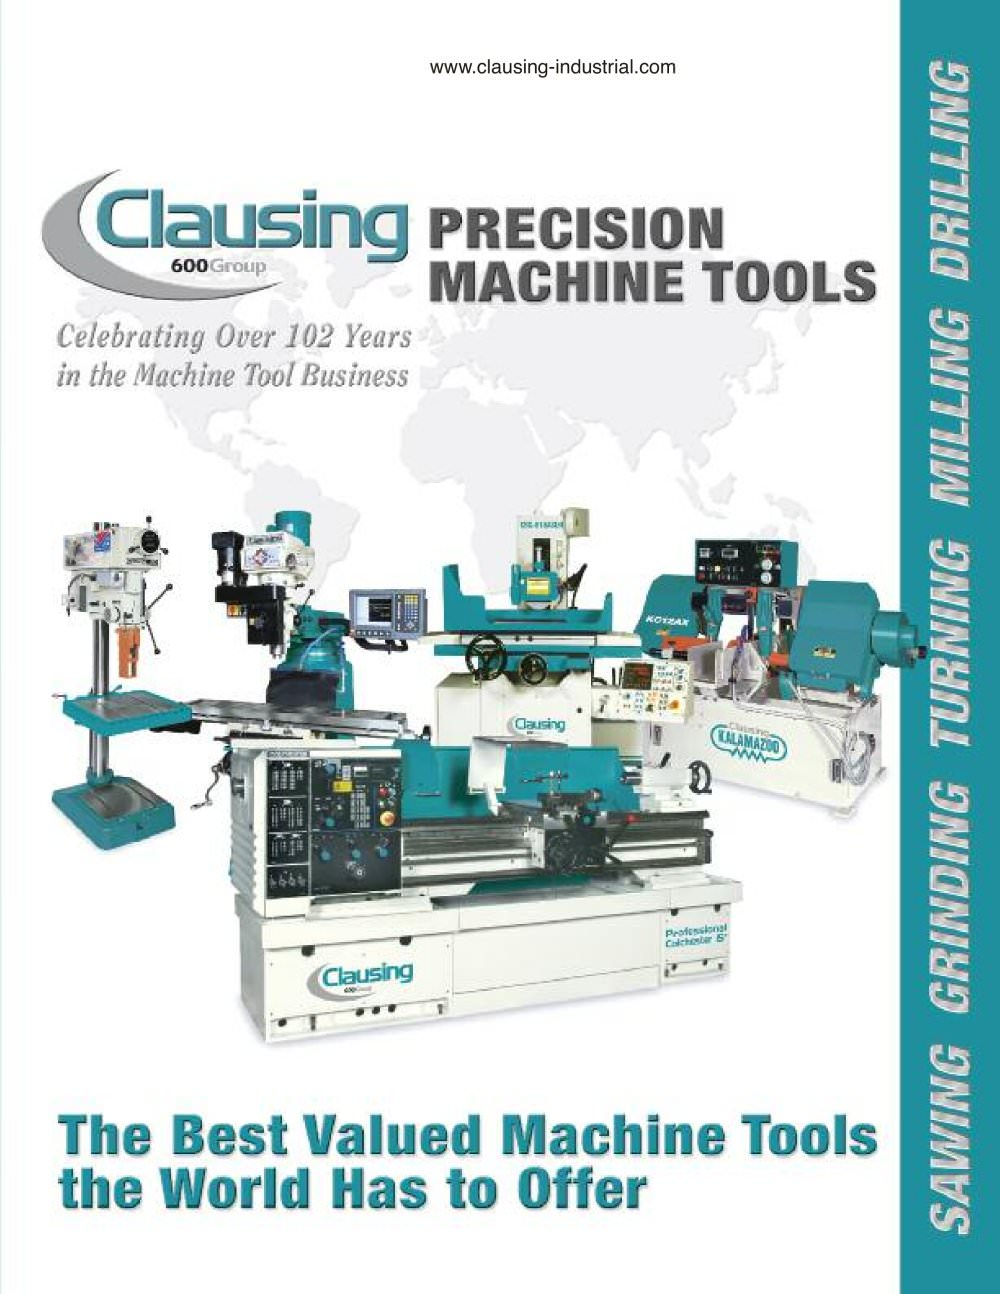 Clausing Full Line Conventional Catalog (138 Pgs) - 1 / 137 Pages